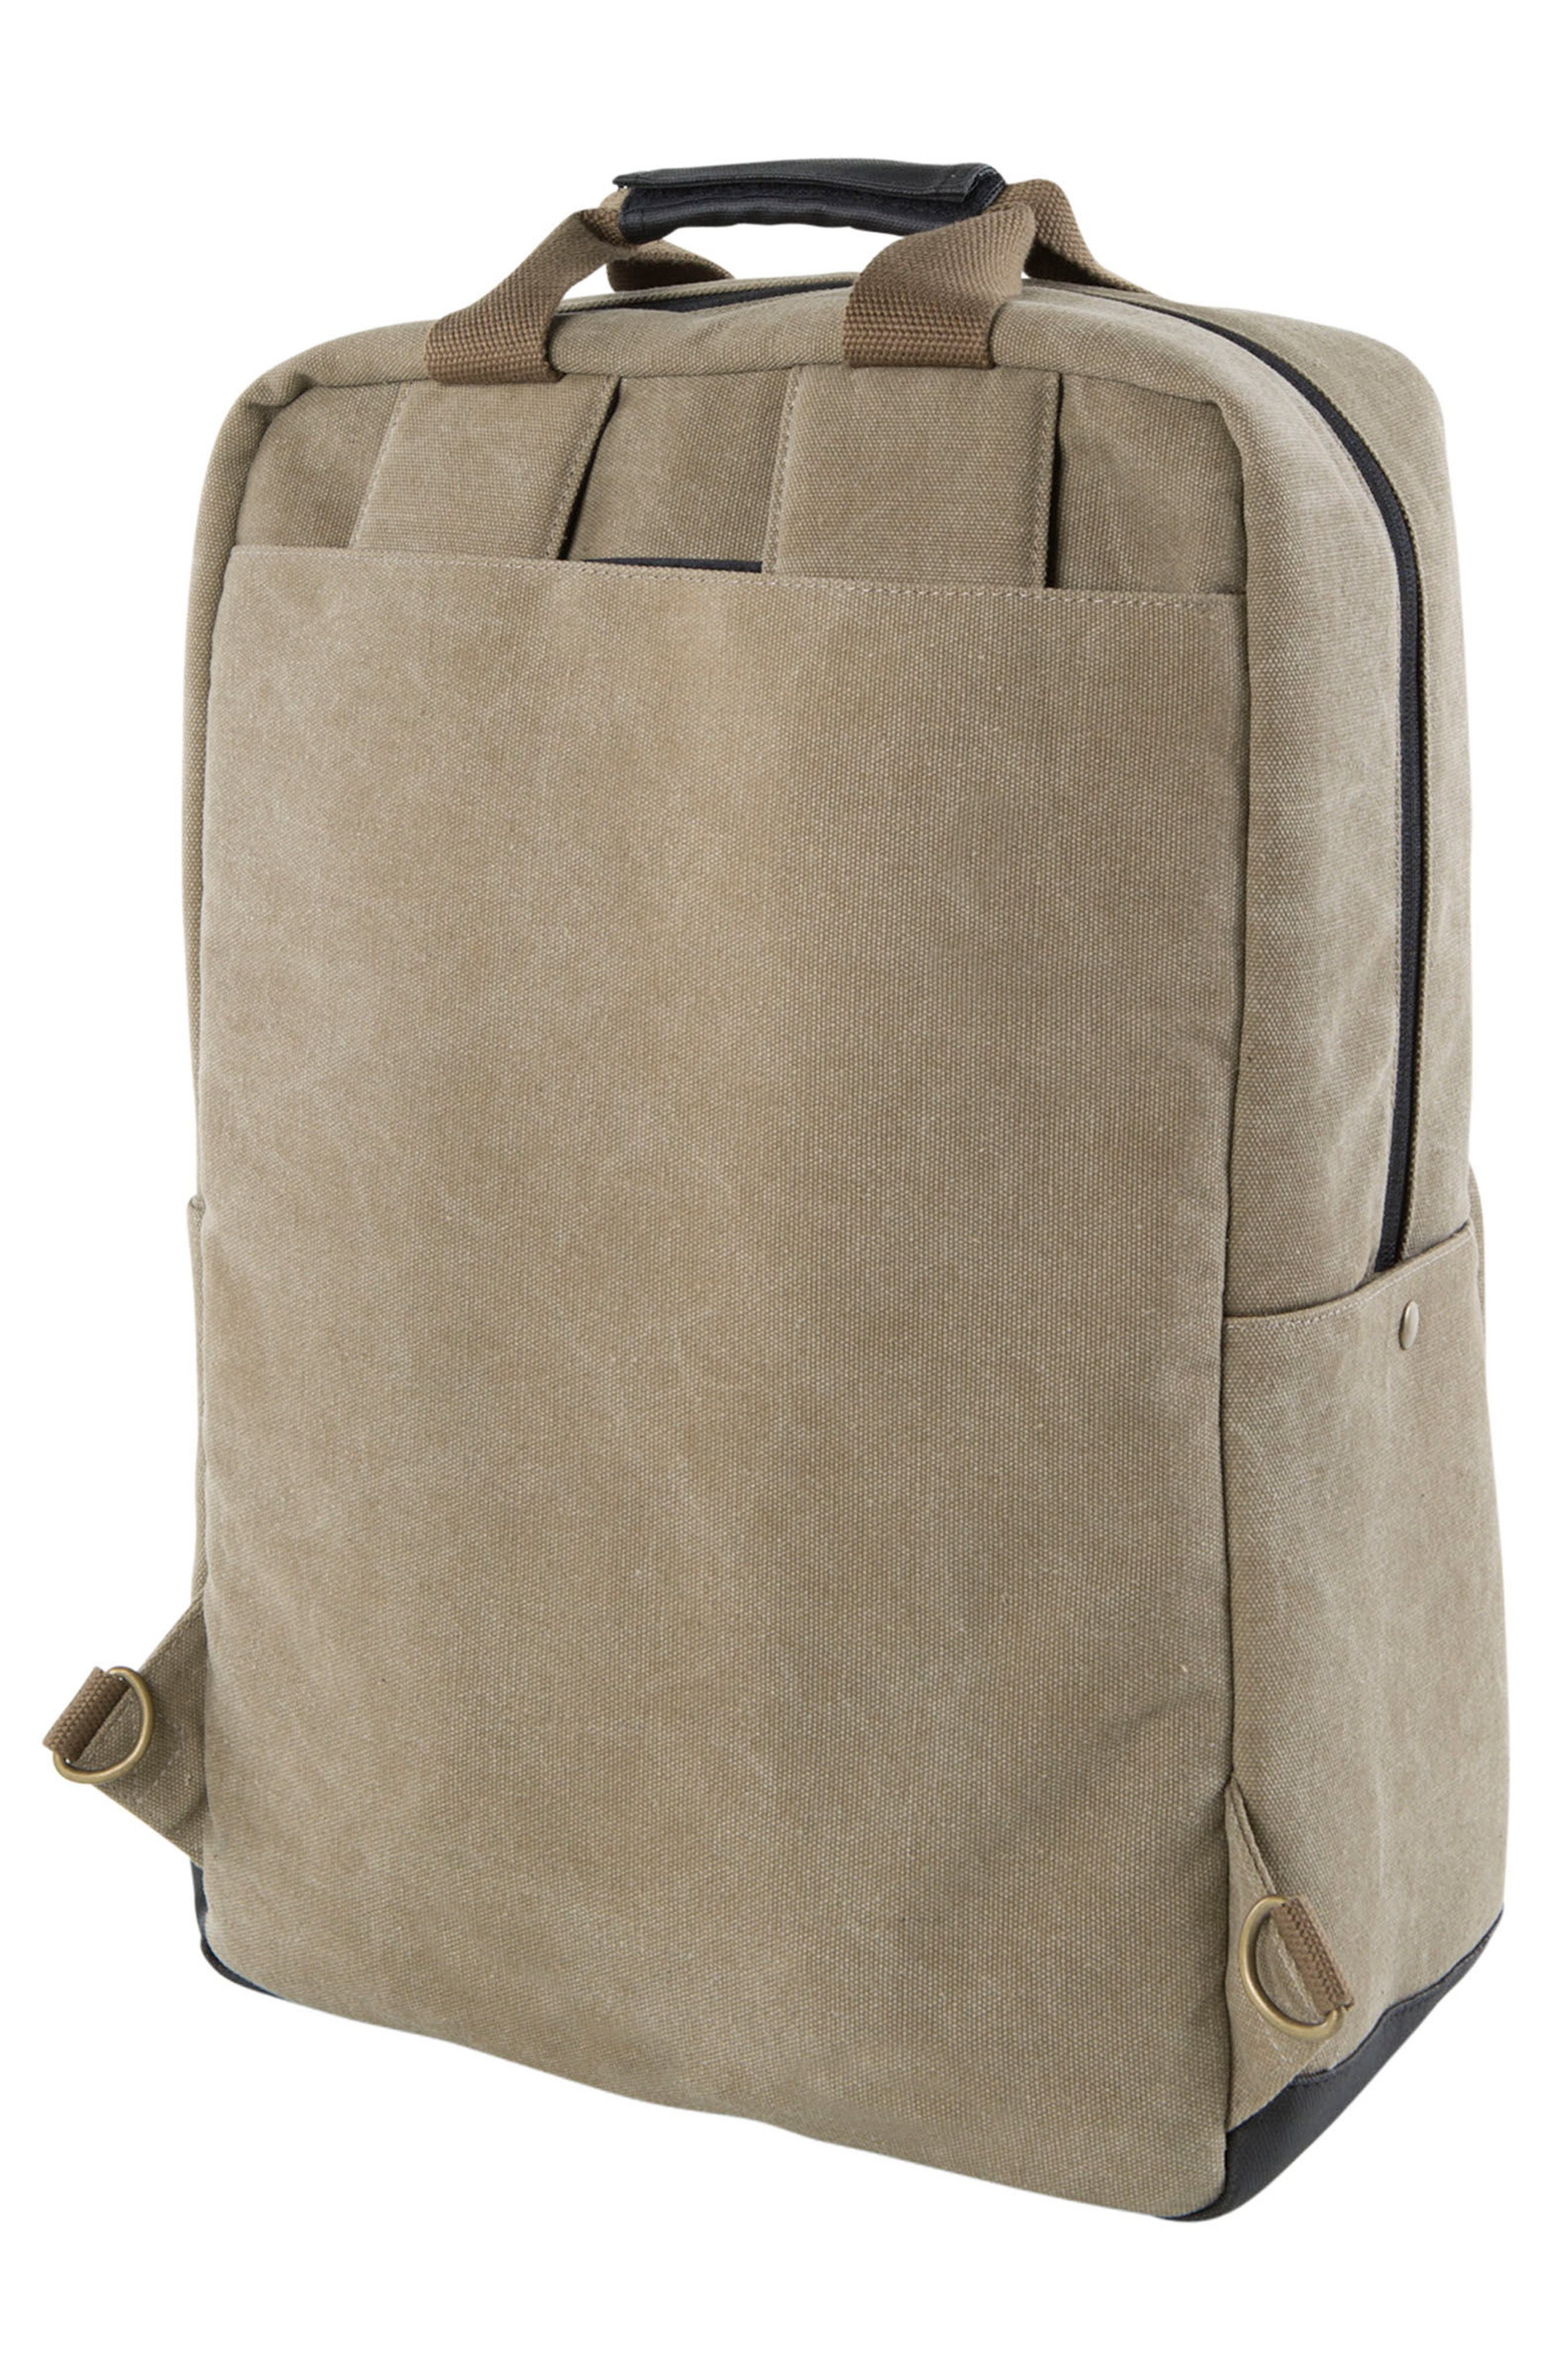 Supply Convertible Water Resistant Backpack,                             Alternate thumbnail 6, color,                             265